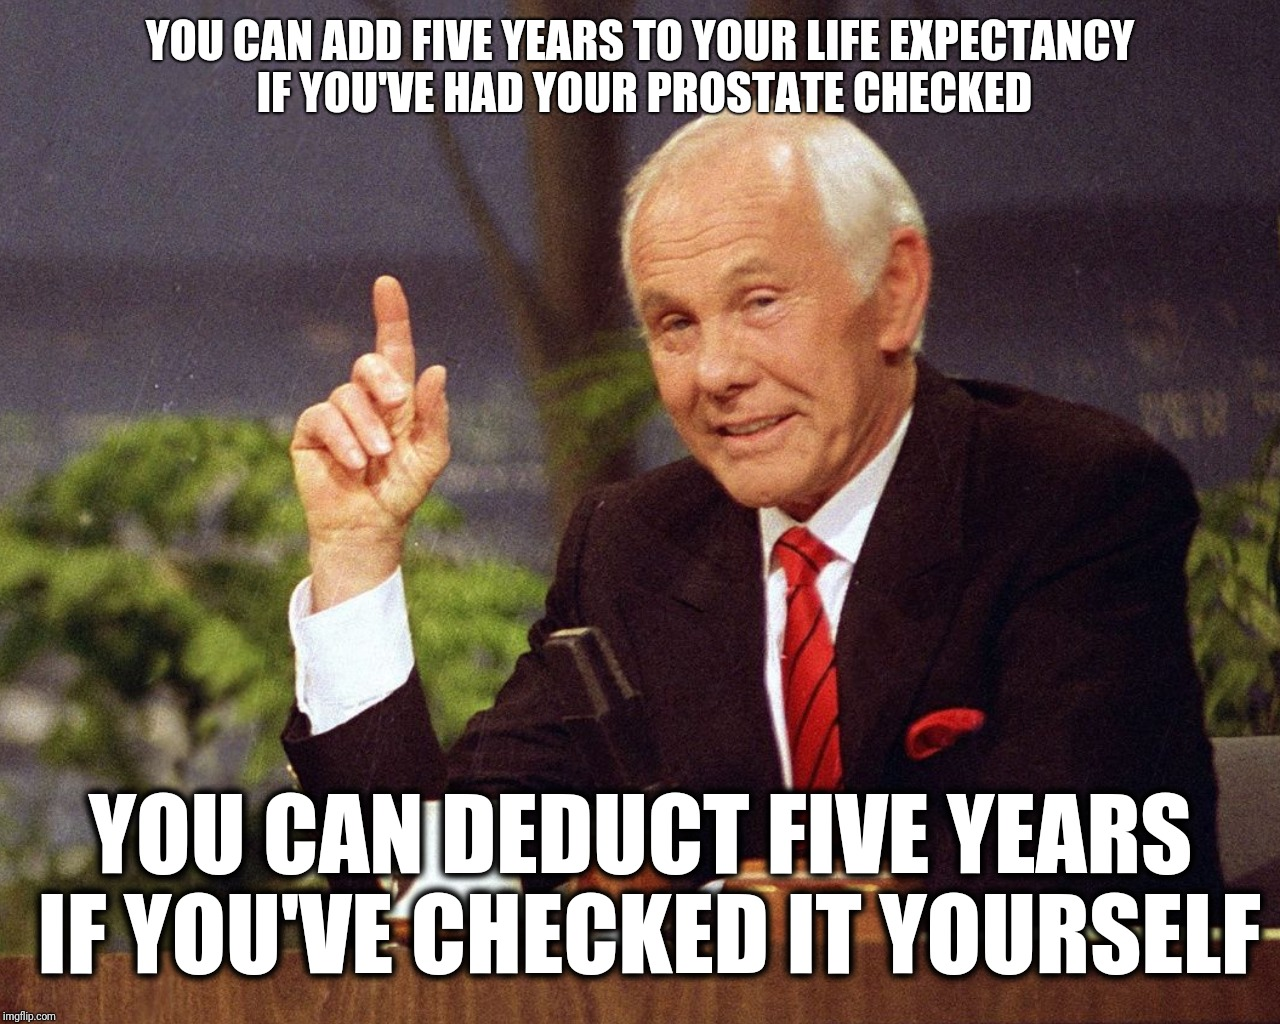 YOU CAN ADD FIVE YEARS TO YOUR LIFE EXPECTANCY IF YOU'VE HAD YOUR PROSTATE CHECKED YOU CAN DEDUCT FIVE YEARS IF YOU'VE CHECKED IT YOURSELF | made w/ Imgflip meme maker